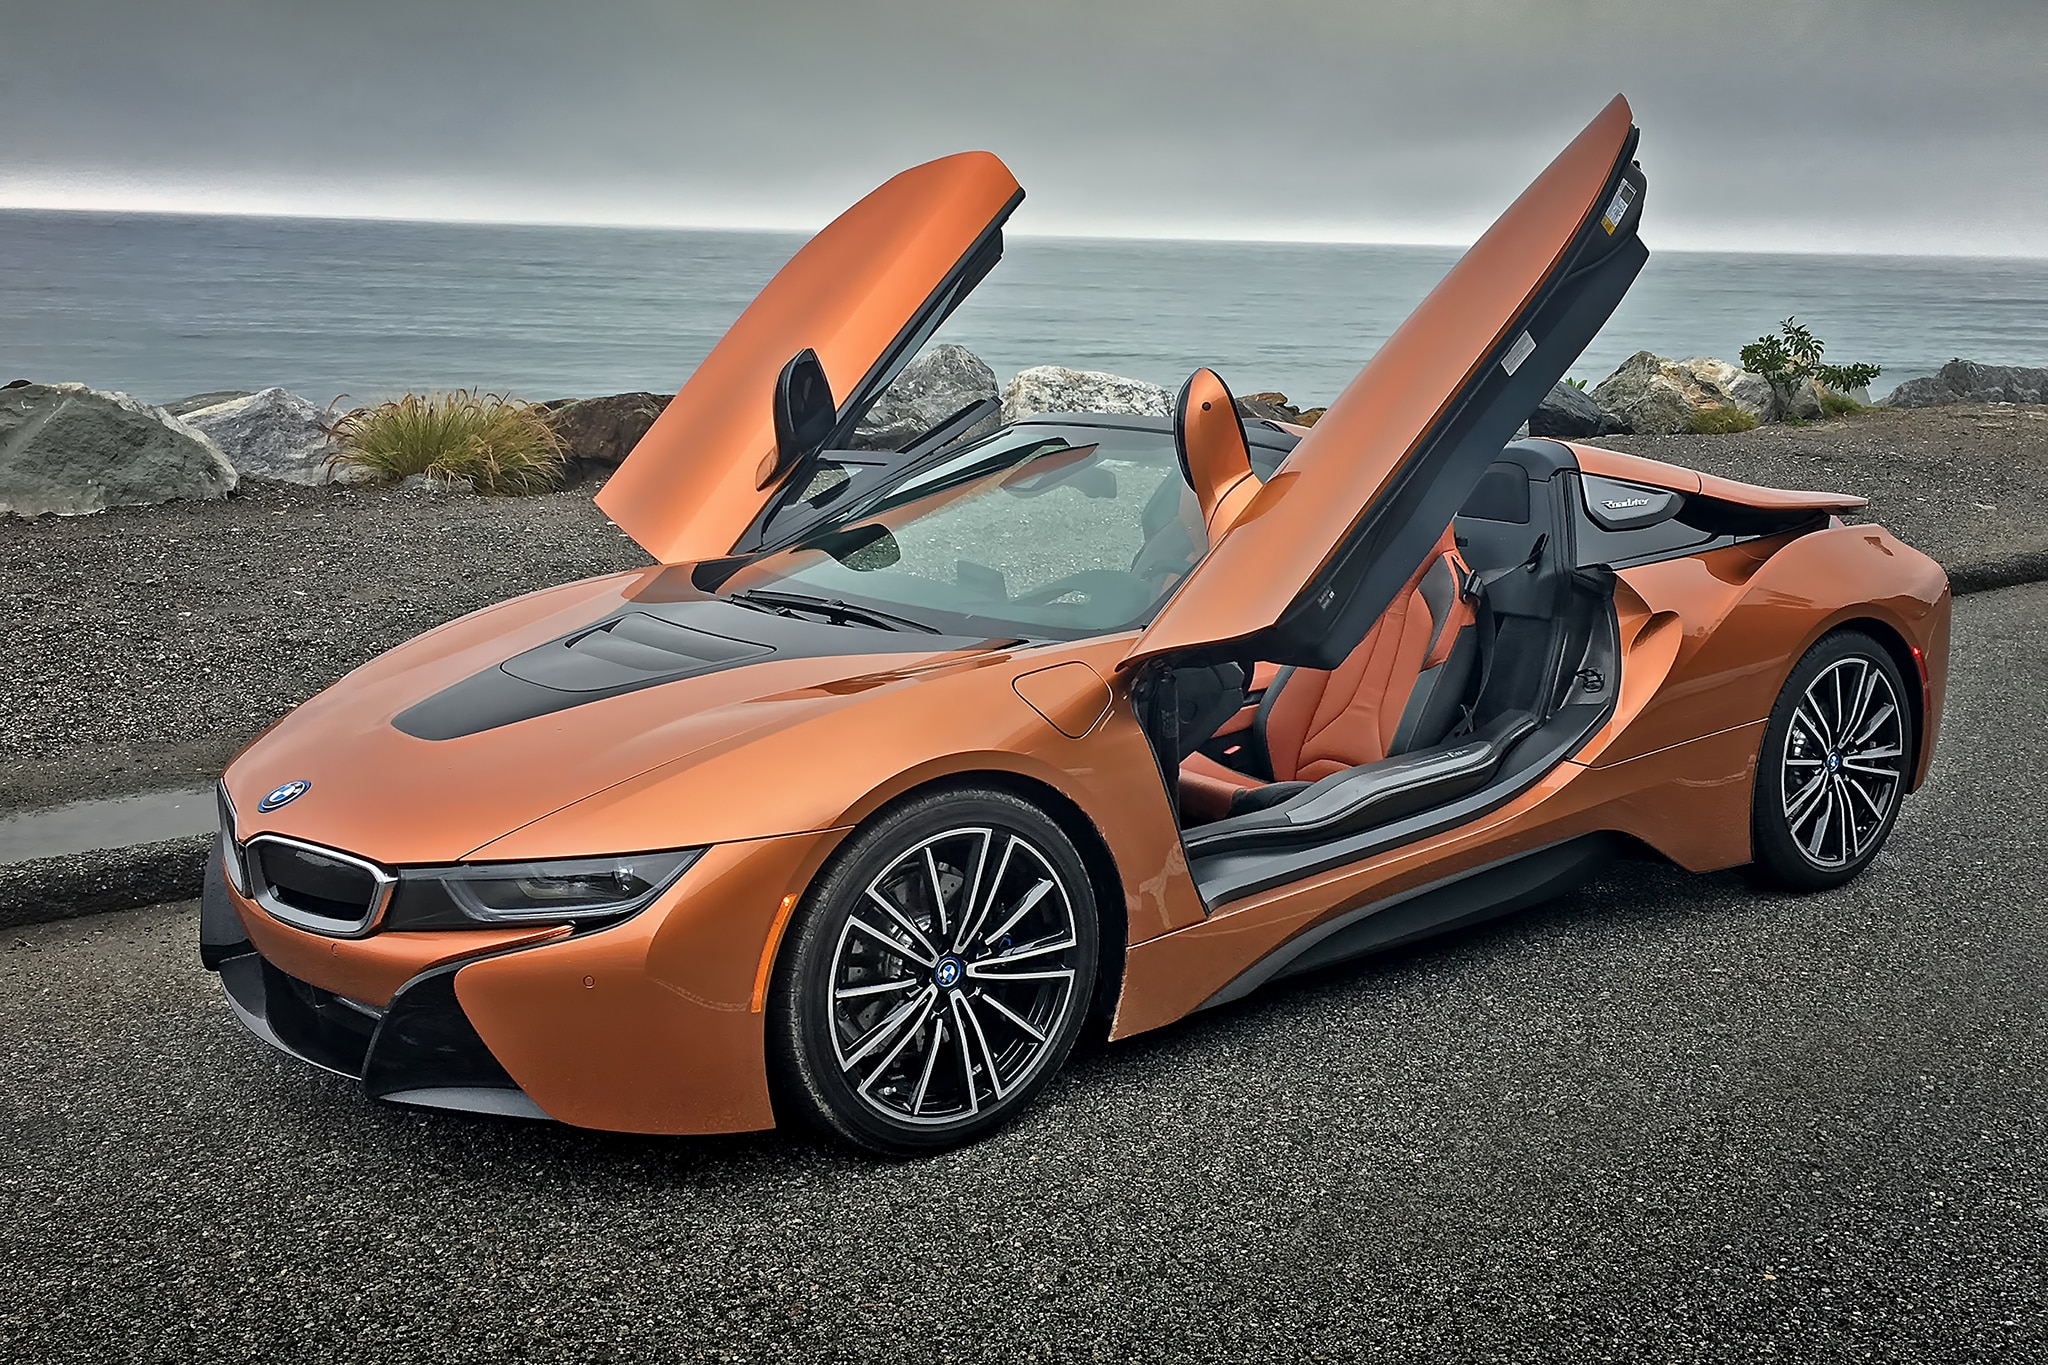 2019 BMW i8 Roadster Review: Impressively Distinctive